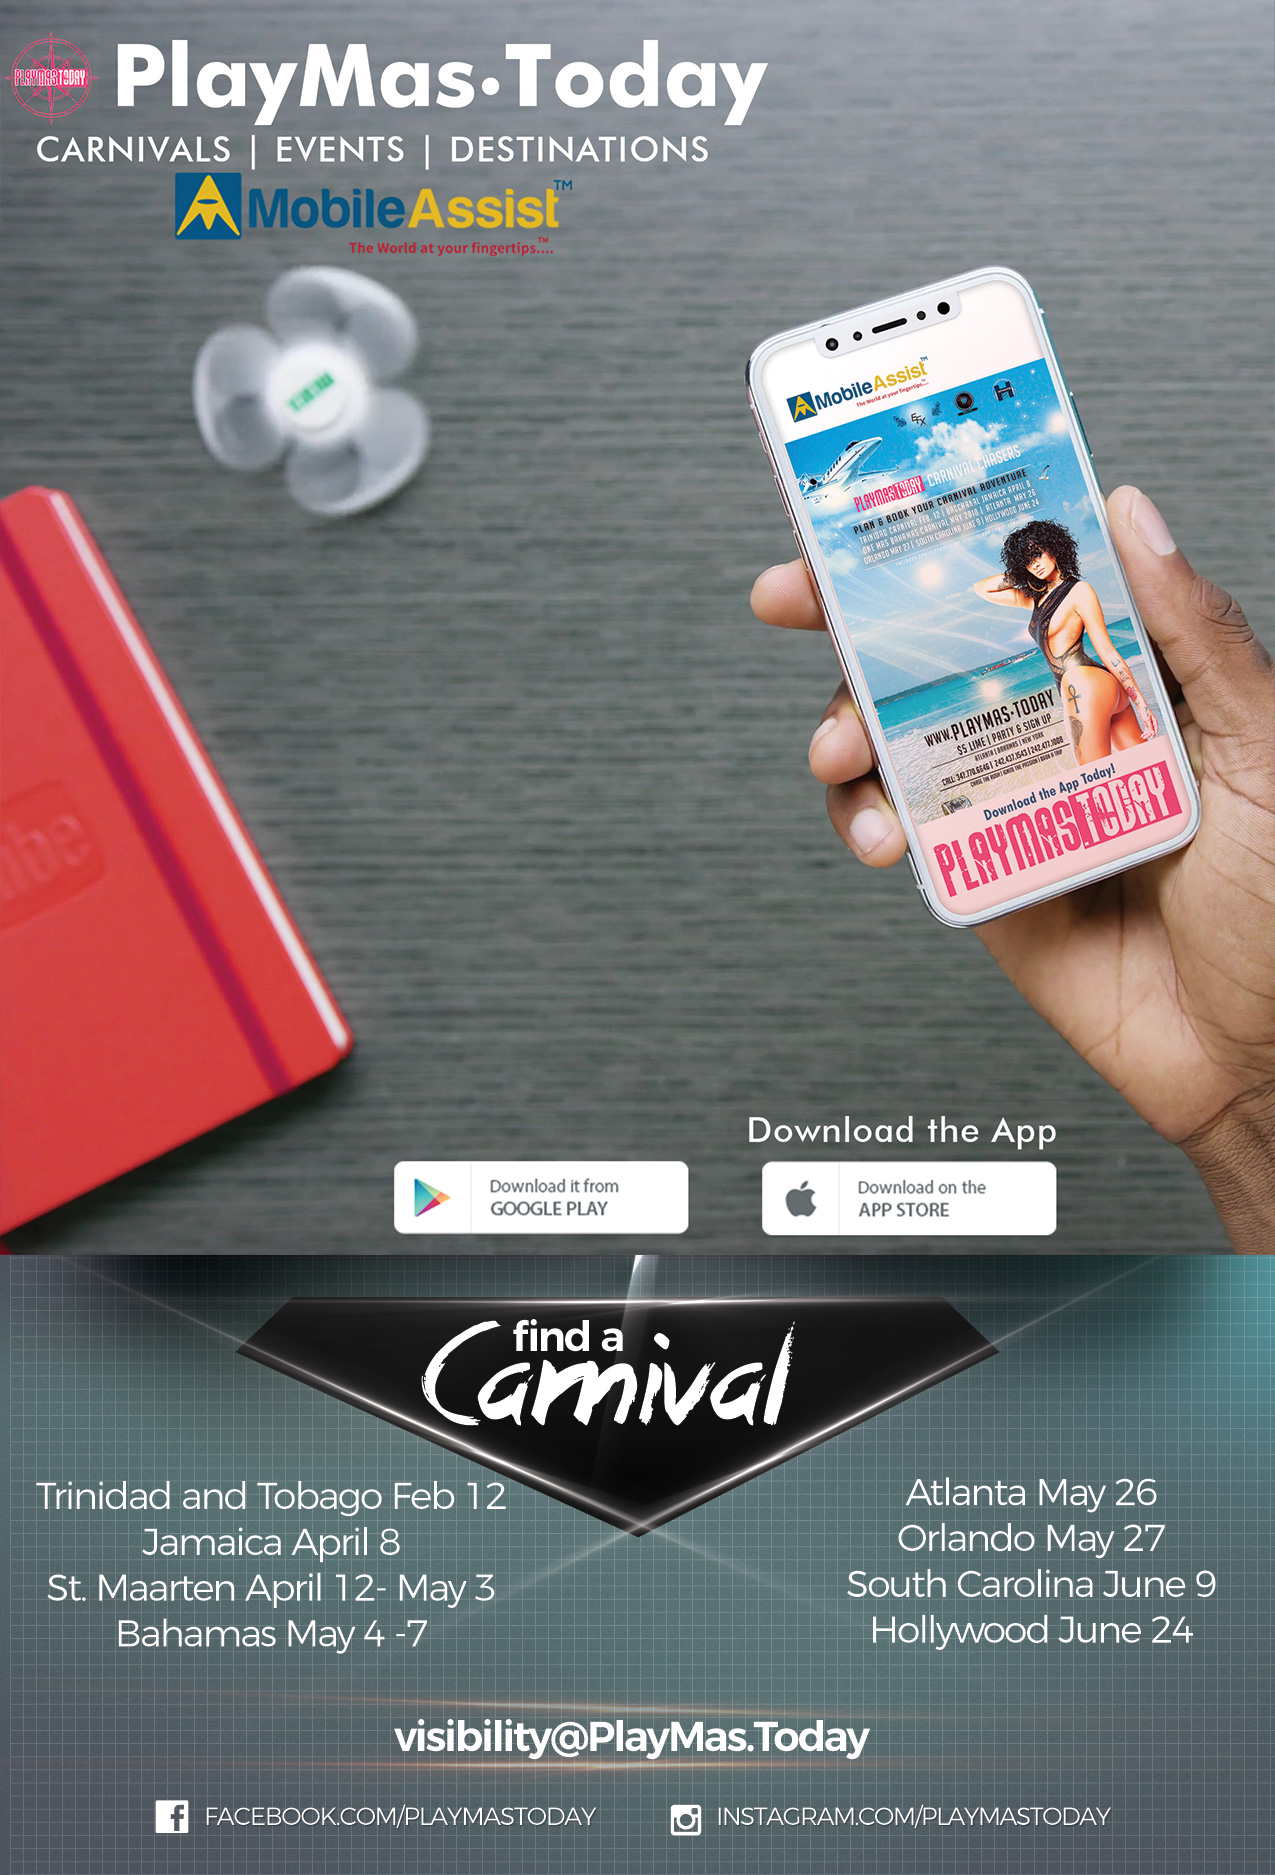 Find out where the next Lime, event or festival is. Discover how you can win tickets, costumes and sponsored items from Carnival bands and Caribbean events around the world.  Have the world at your fingertips with Mobile Assist App and PlayMas.Today!